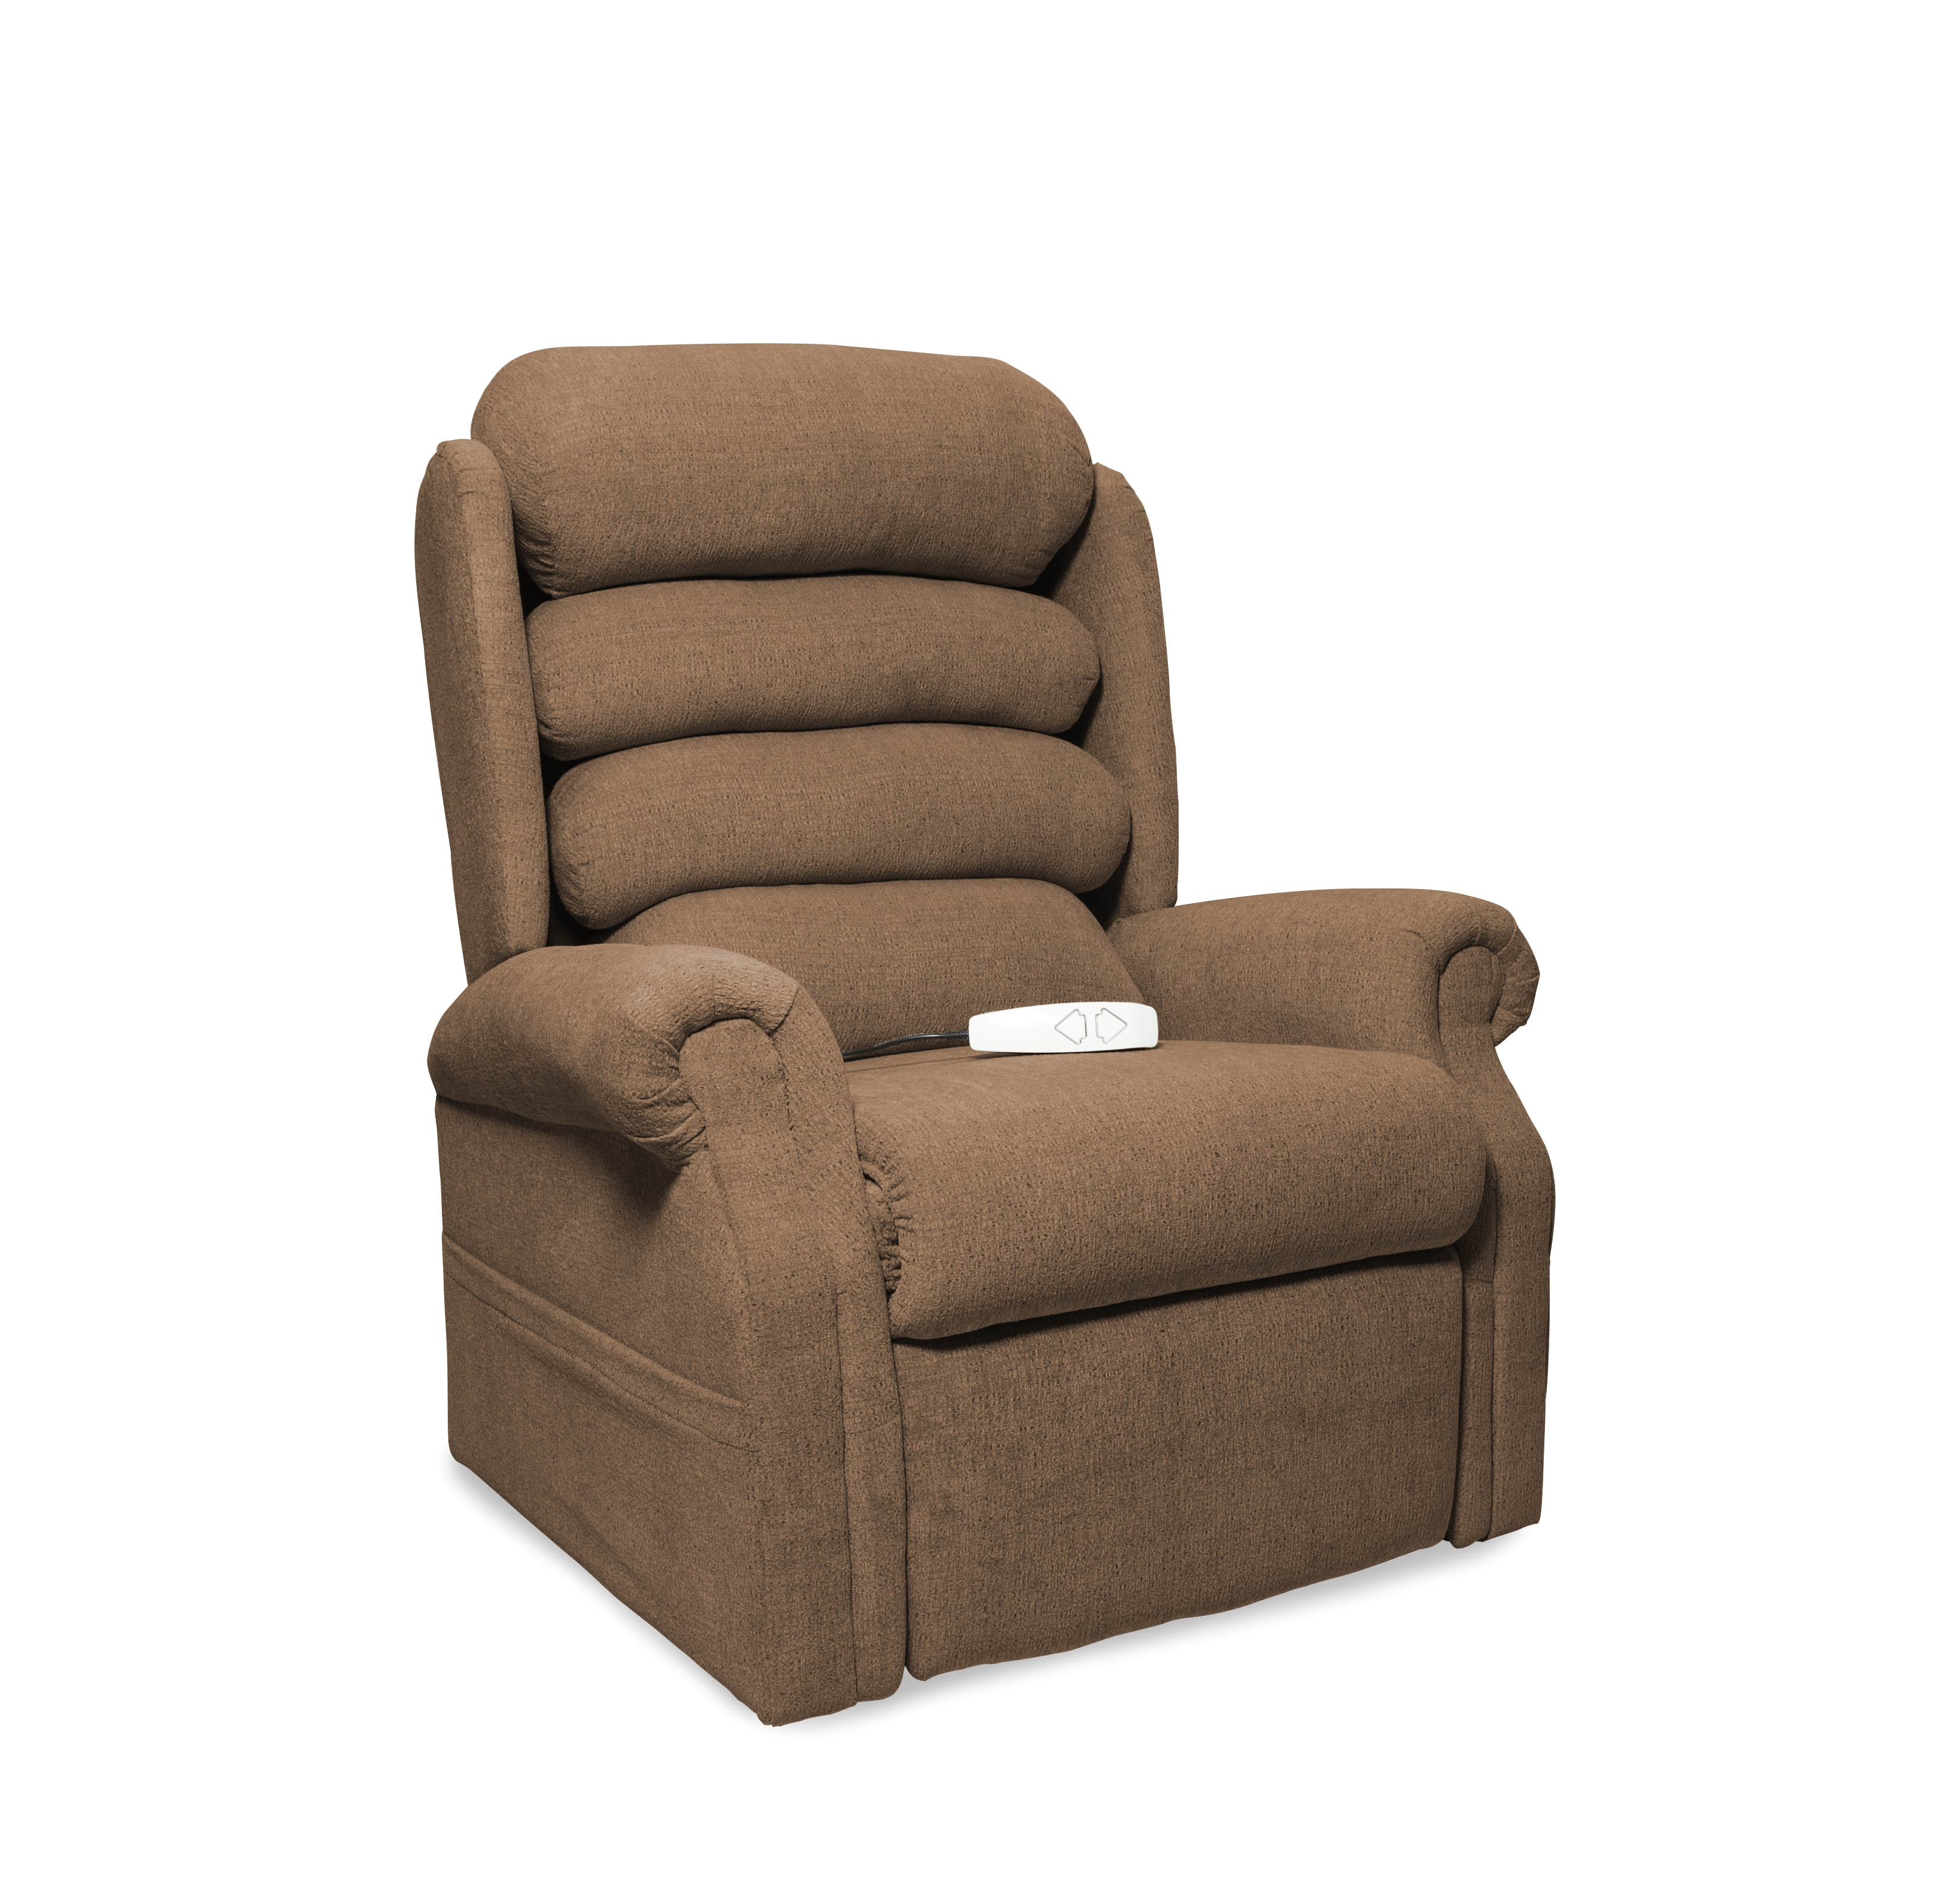 Free Lift Chairs for the Elderly Chair Gray Leather Recliner and ...